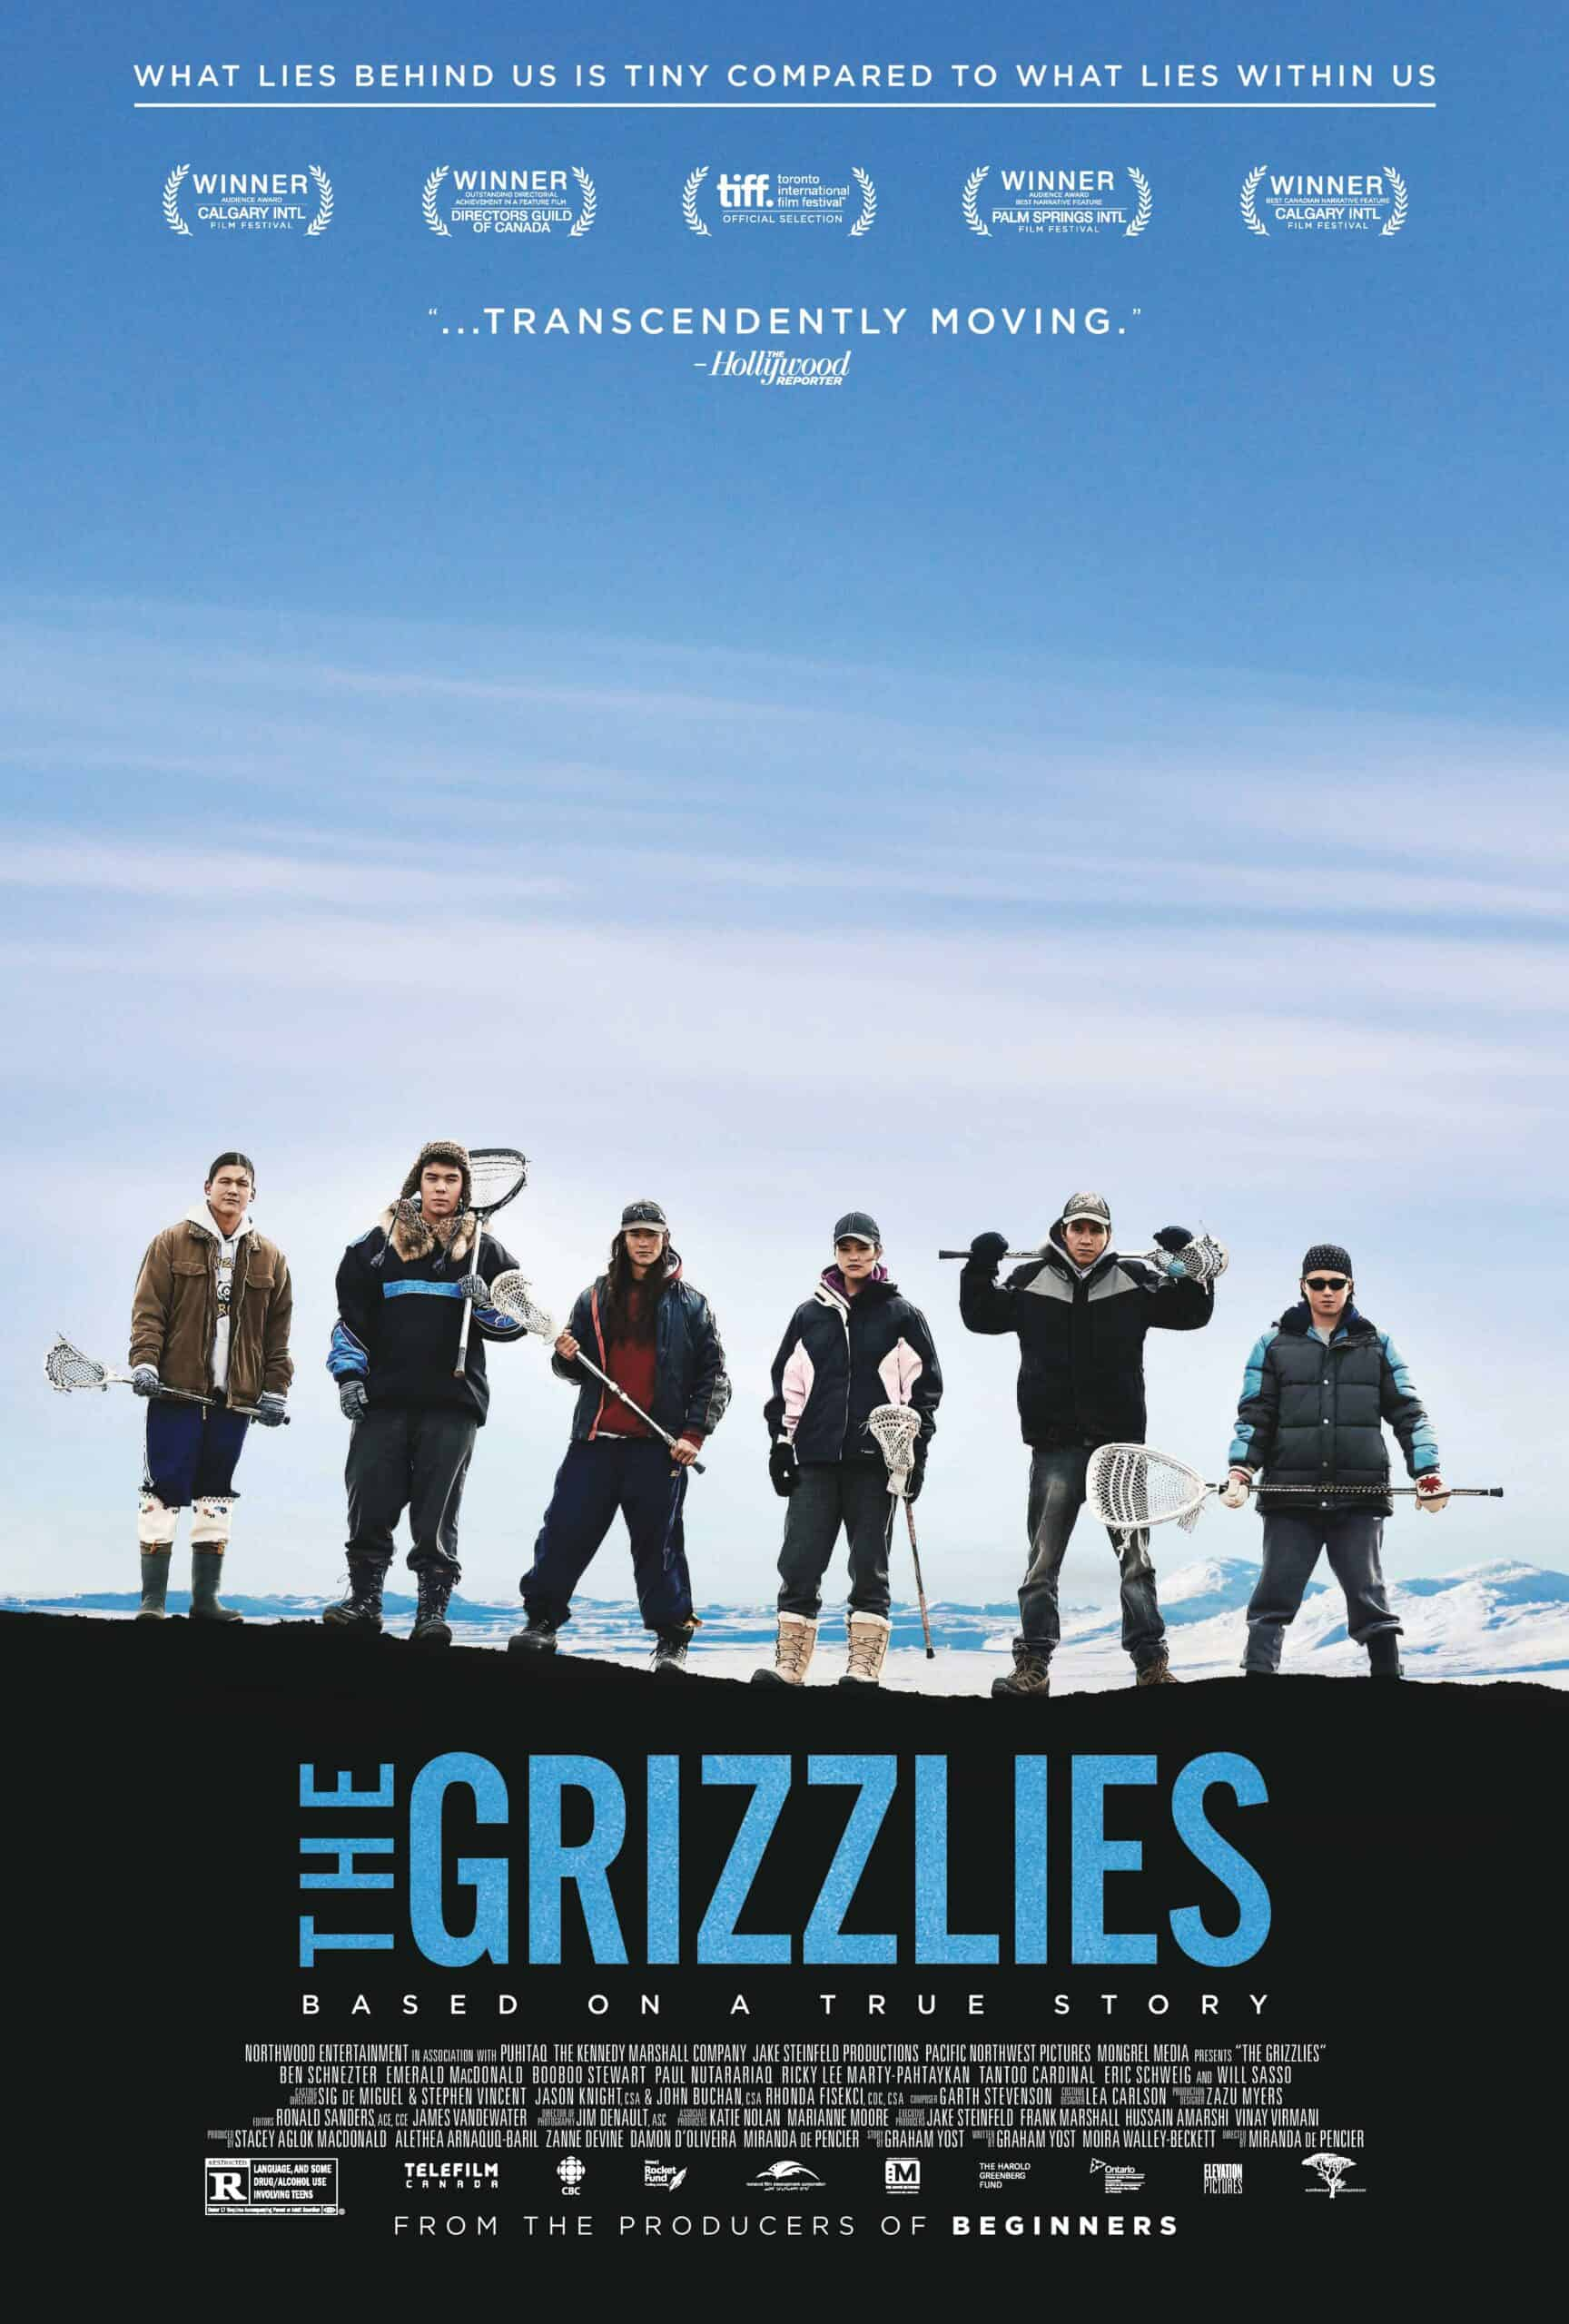 Now you have the chance to enter to win two tickets to see The Grizzlies in theaters on opening night. Find out more by visiting the blog. #giveaway #movielovers #win